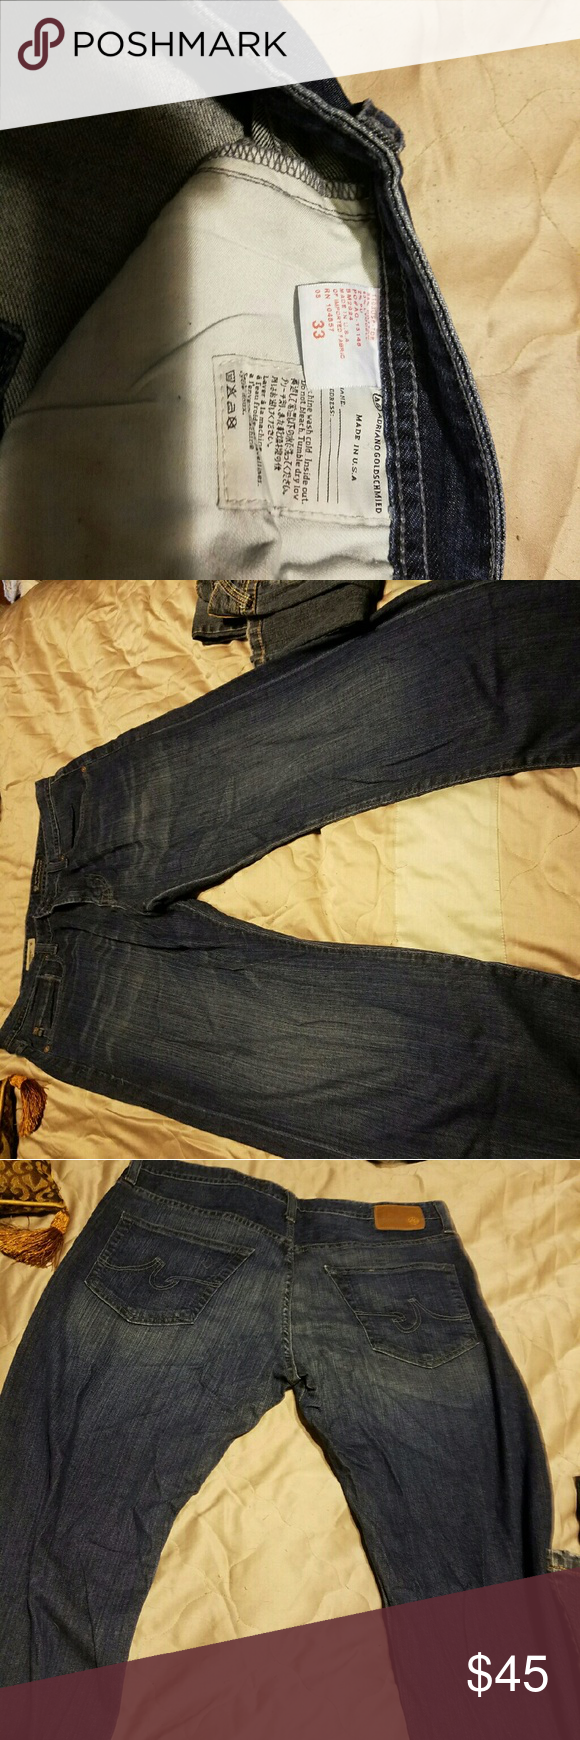 """Adrino Goldschmied Mens size 33 the Campaign loose AG ADRIANO GOLDSCHMIED """"the Campaign"""" Dark Straight Leg Jeans Men's Size 33 55% cotton 43% lyocell 2% pu  In excellent condition.     From clean and smoke free environment. AG Adriano Goldschmied Jeans"""